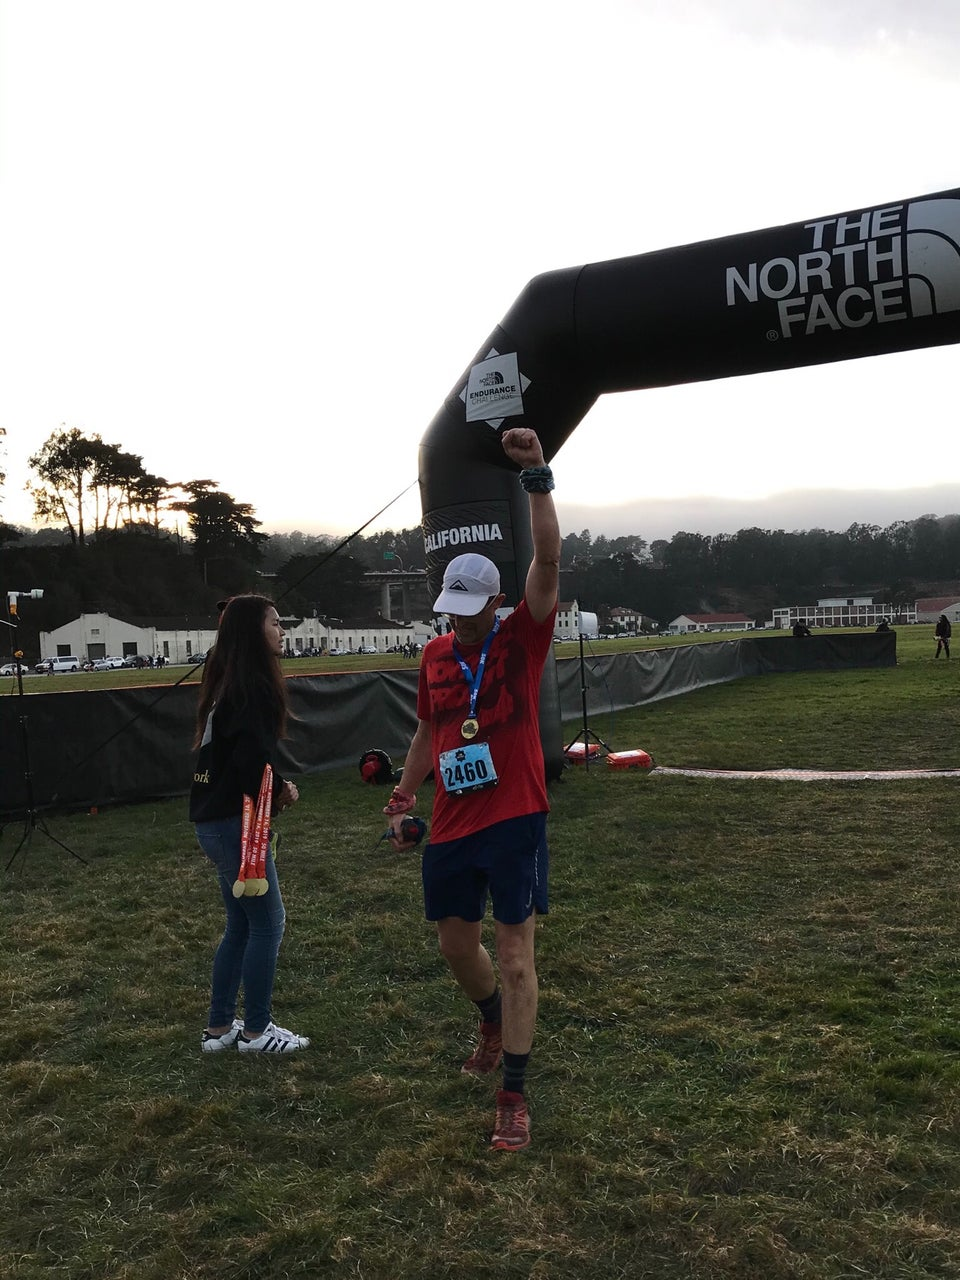 Tantek wearing a 50k finisher's medal just past the The North Face Endurance Challenge finish line in Crissy Field, San Francisco, bowing his head, raising his left fist to the sky.